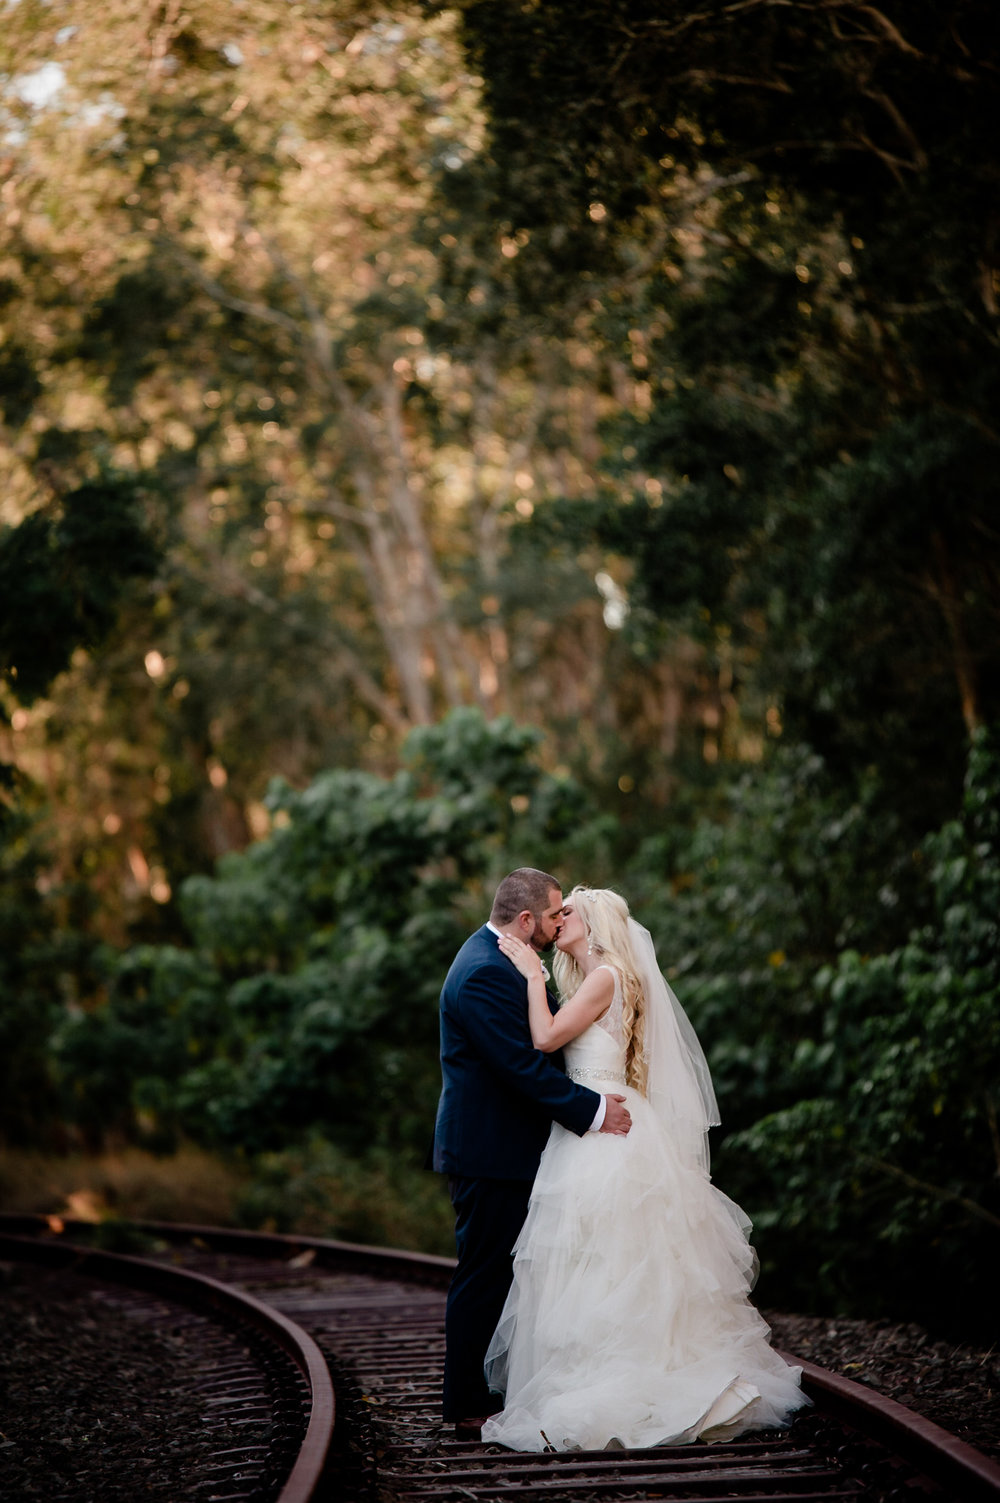 The_Belongil_Byron_Bay_Weddings_New_Black_Studios-112.jpg